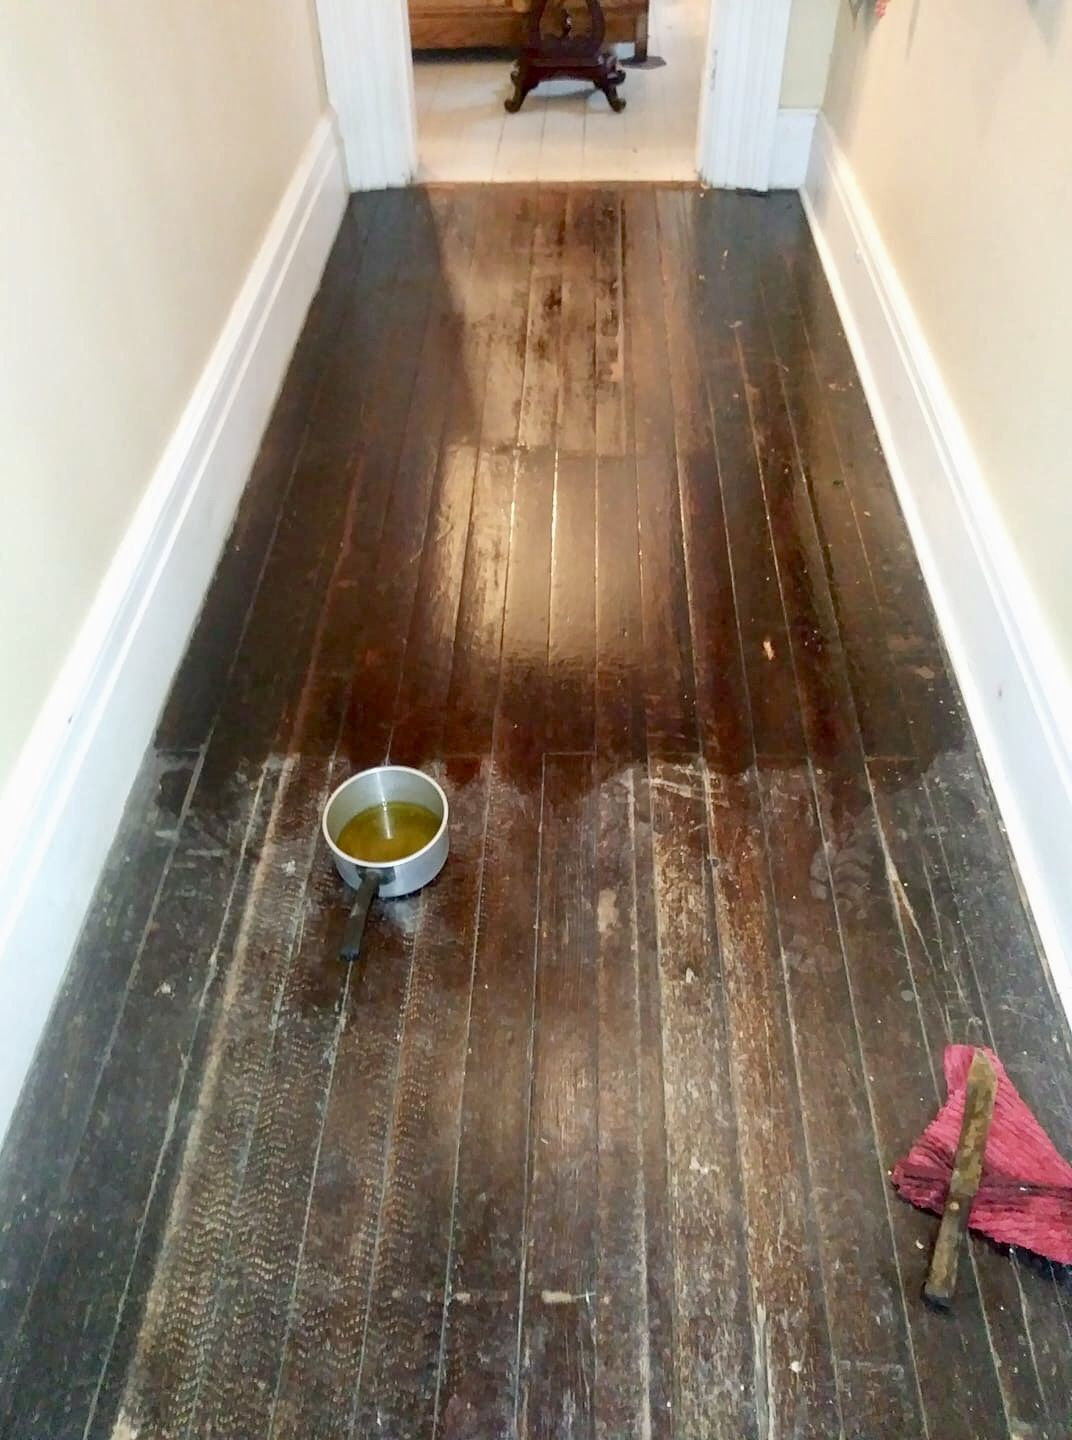 3 4 Cup Linseed Oil 1 4 Cup Turpentine And 1 4 Cup Vinegar Mix Together And Put On With Steel W Clean Tile Natural Cleaning Recipes Natural Cleaning Products